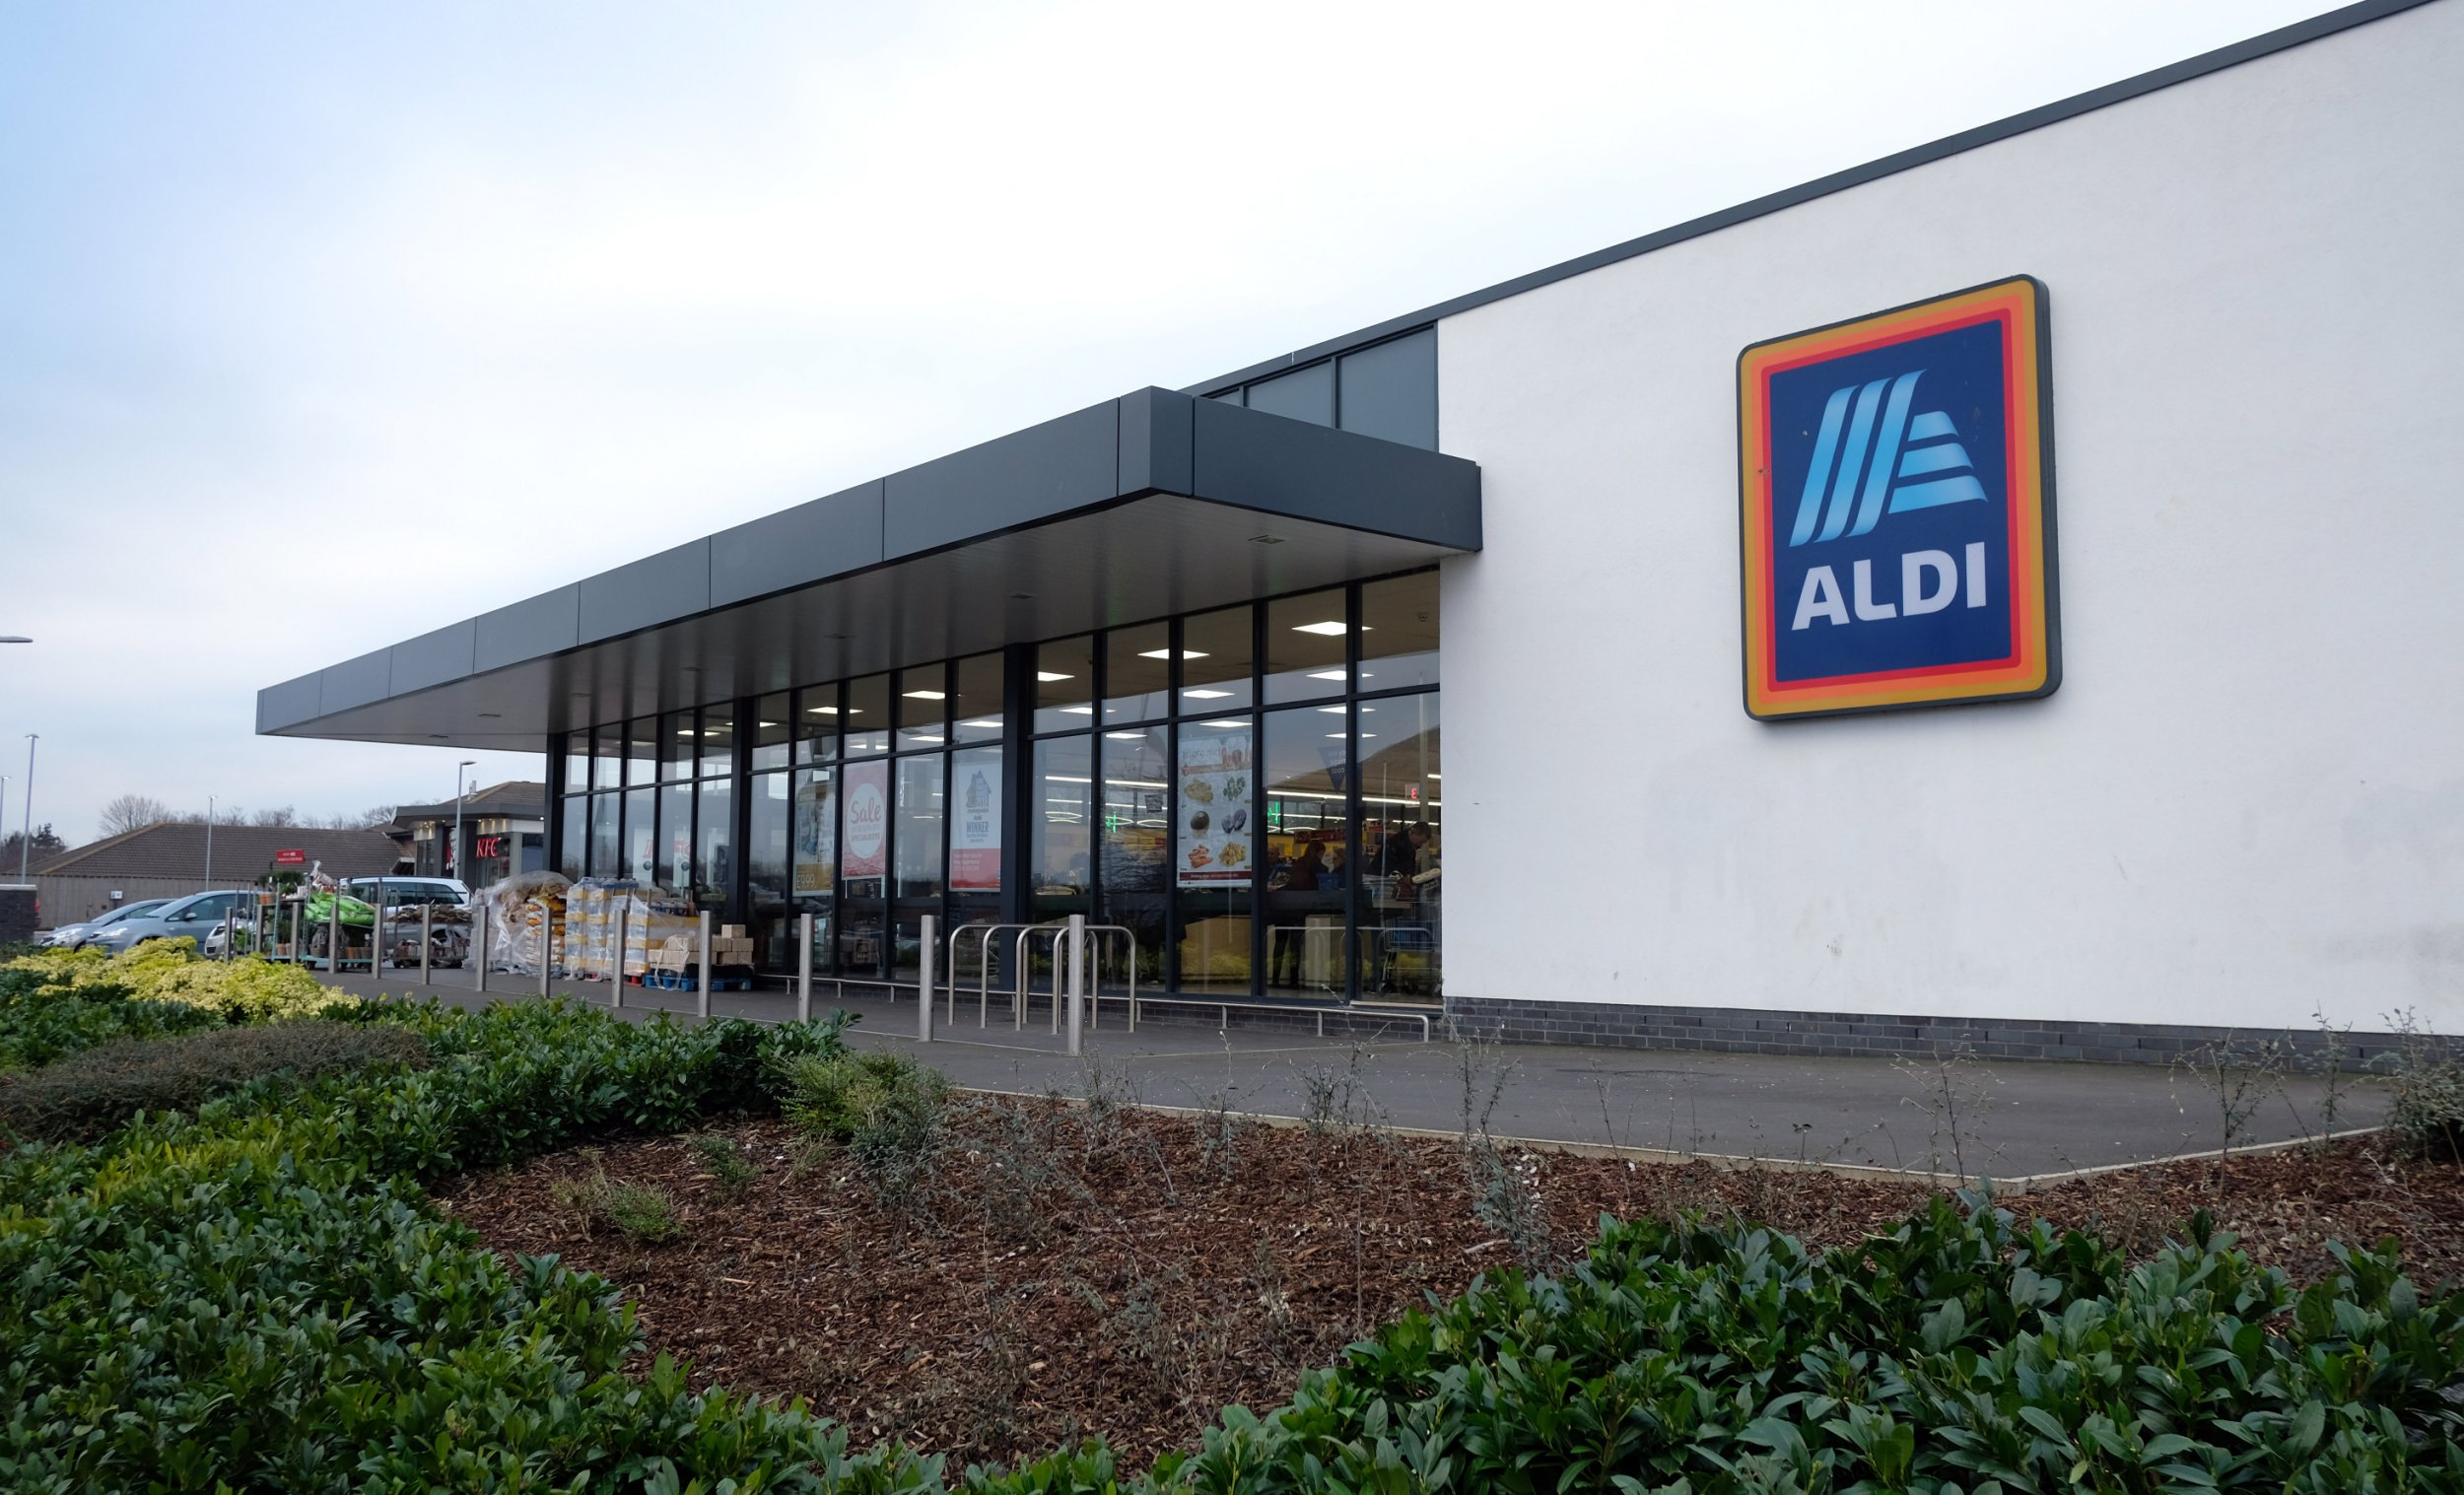 WITH VIDEO Maxine Appleton from Acklam who says she feels violated and that her human rights were breached after staff at Aldi in Coulby Newham demanded to look in her handbag at the check out, in case she had tried to steal from the shop. She claims staff said it was company policy. Aldi in Coulby Newham